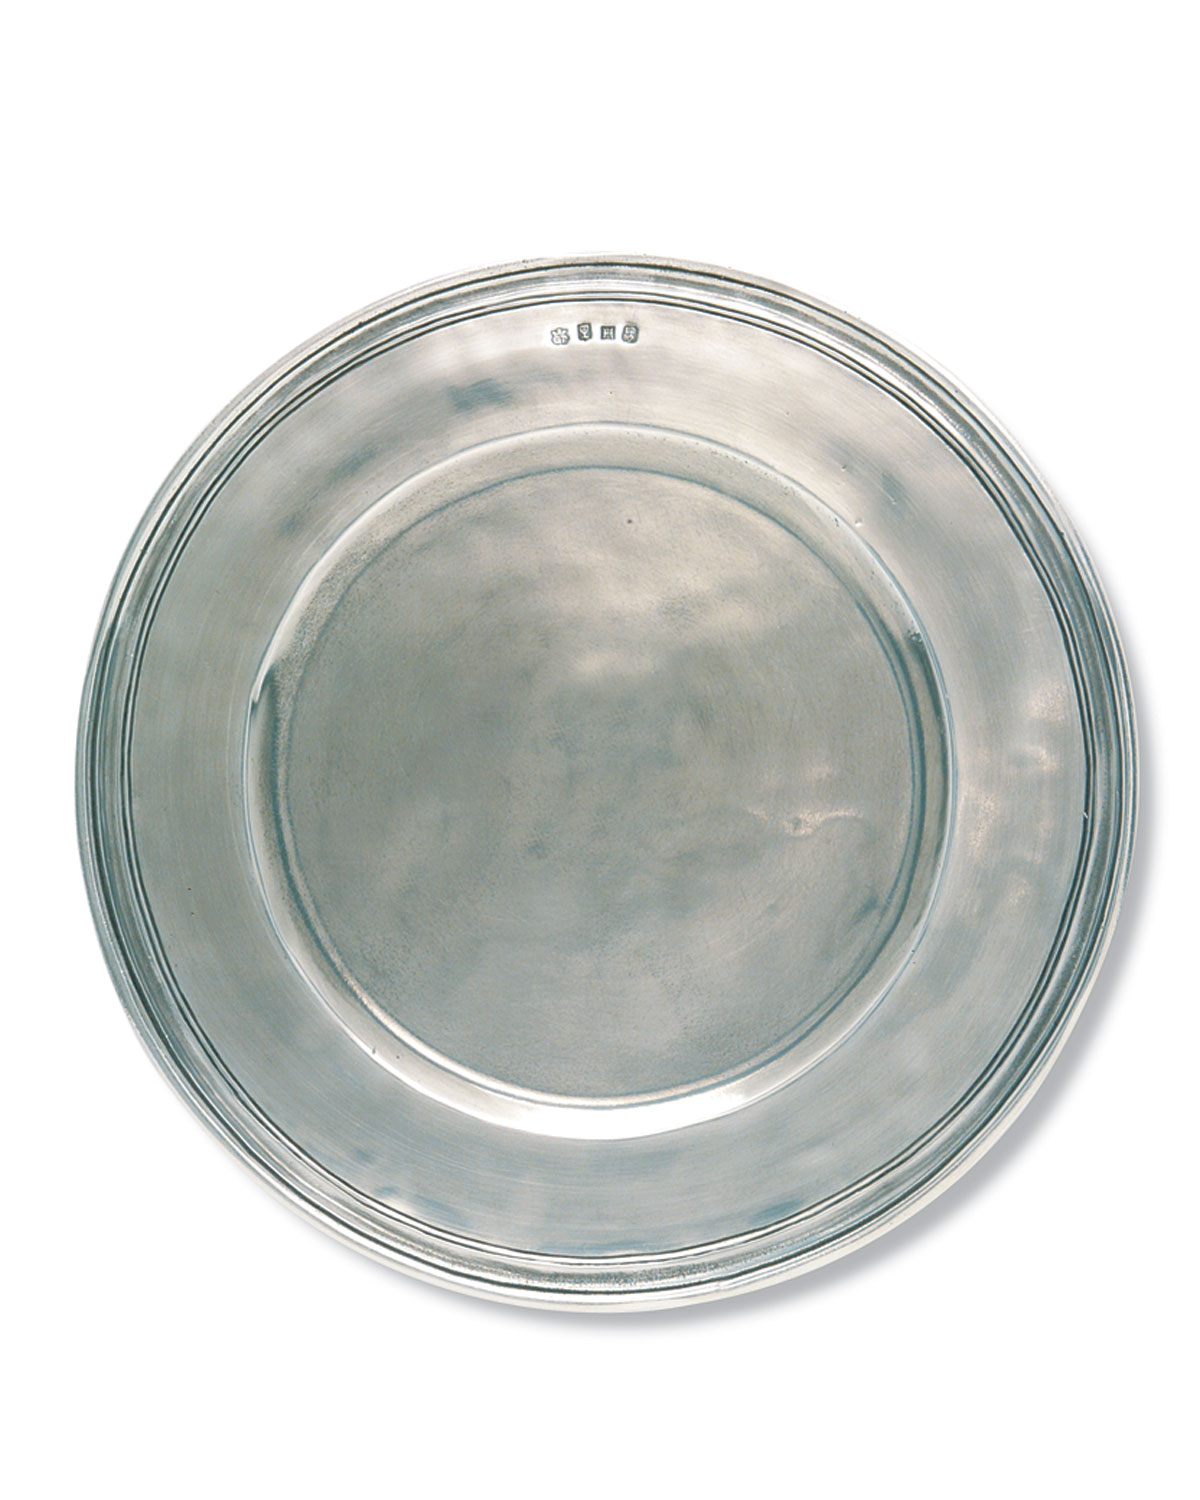 Match Dinnerwares SCRIBED RIM LARGE CHARGER PLATE